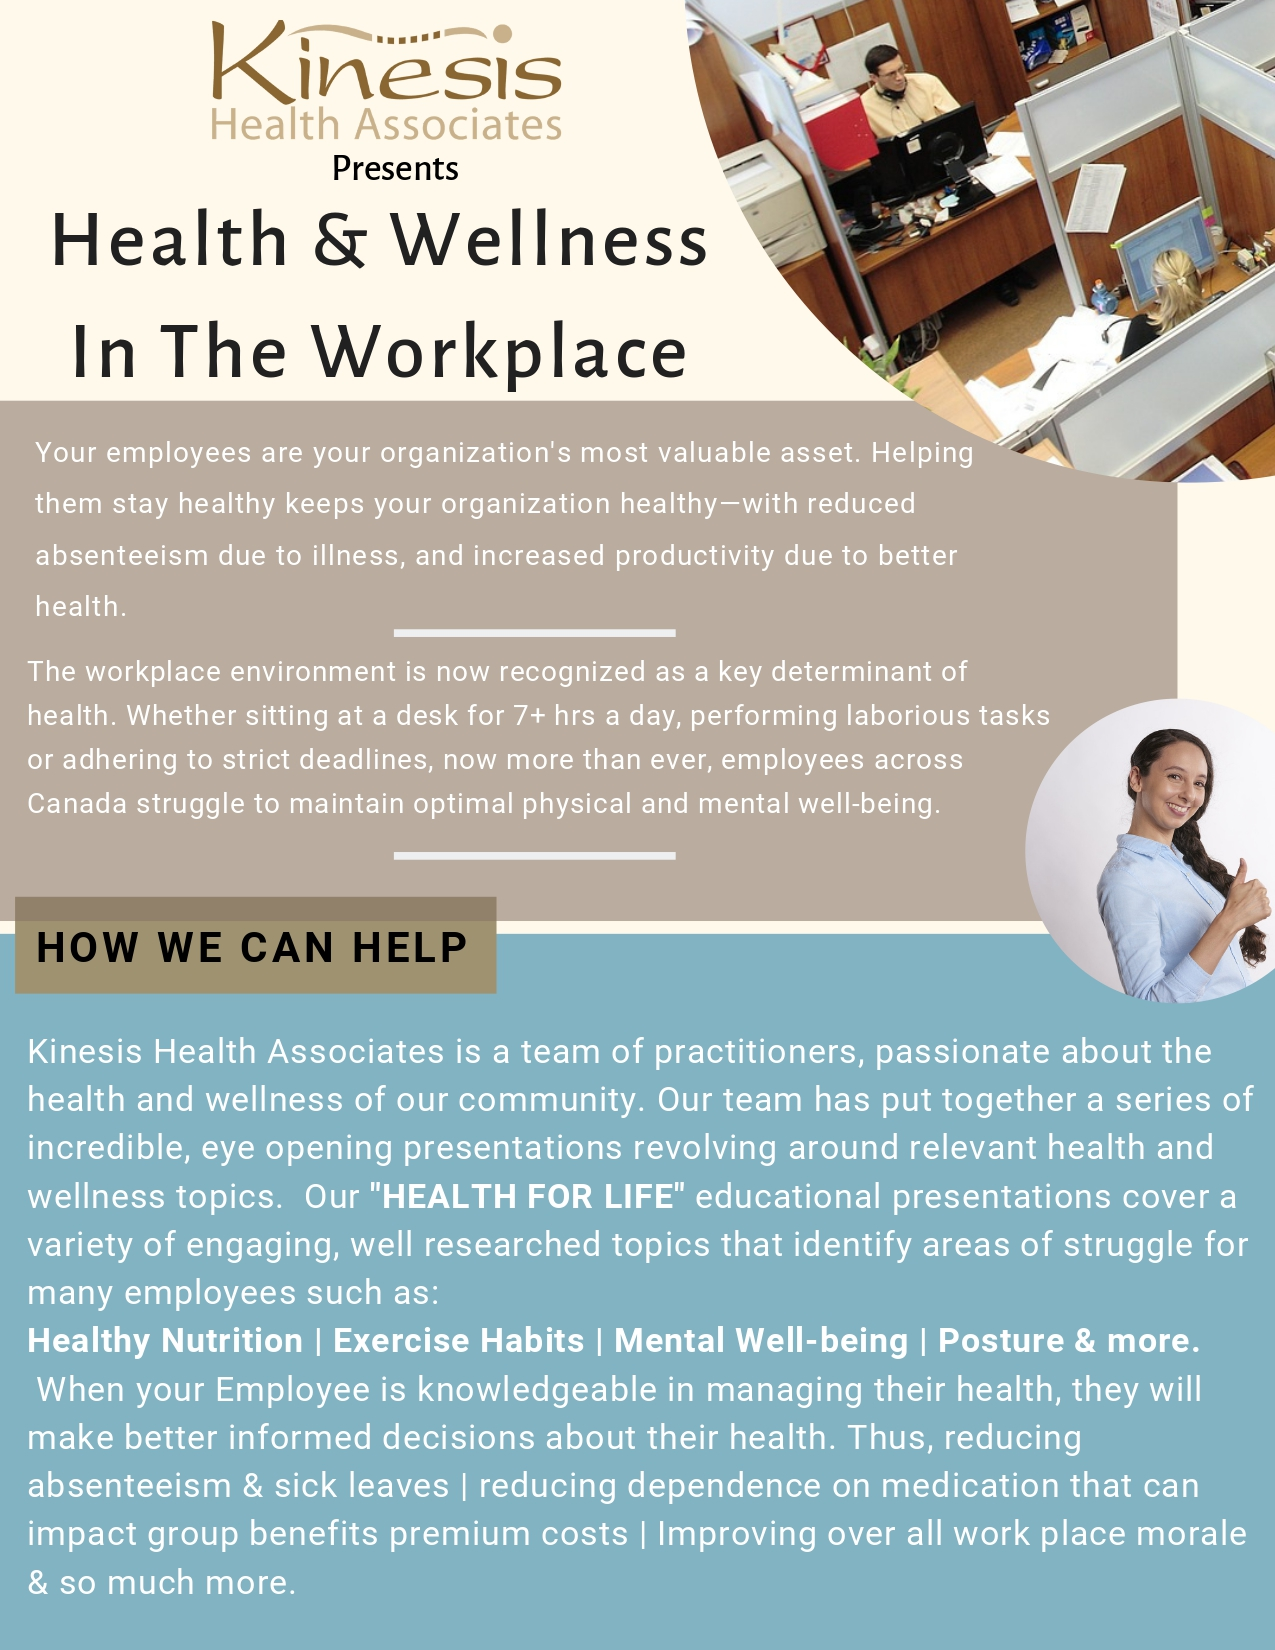 Health & Wellness in the workplace flyer, Page 1